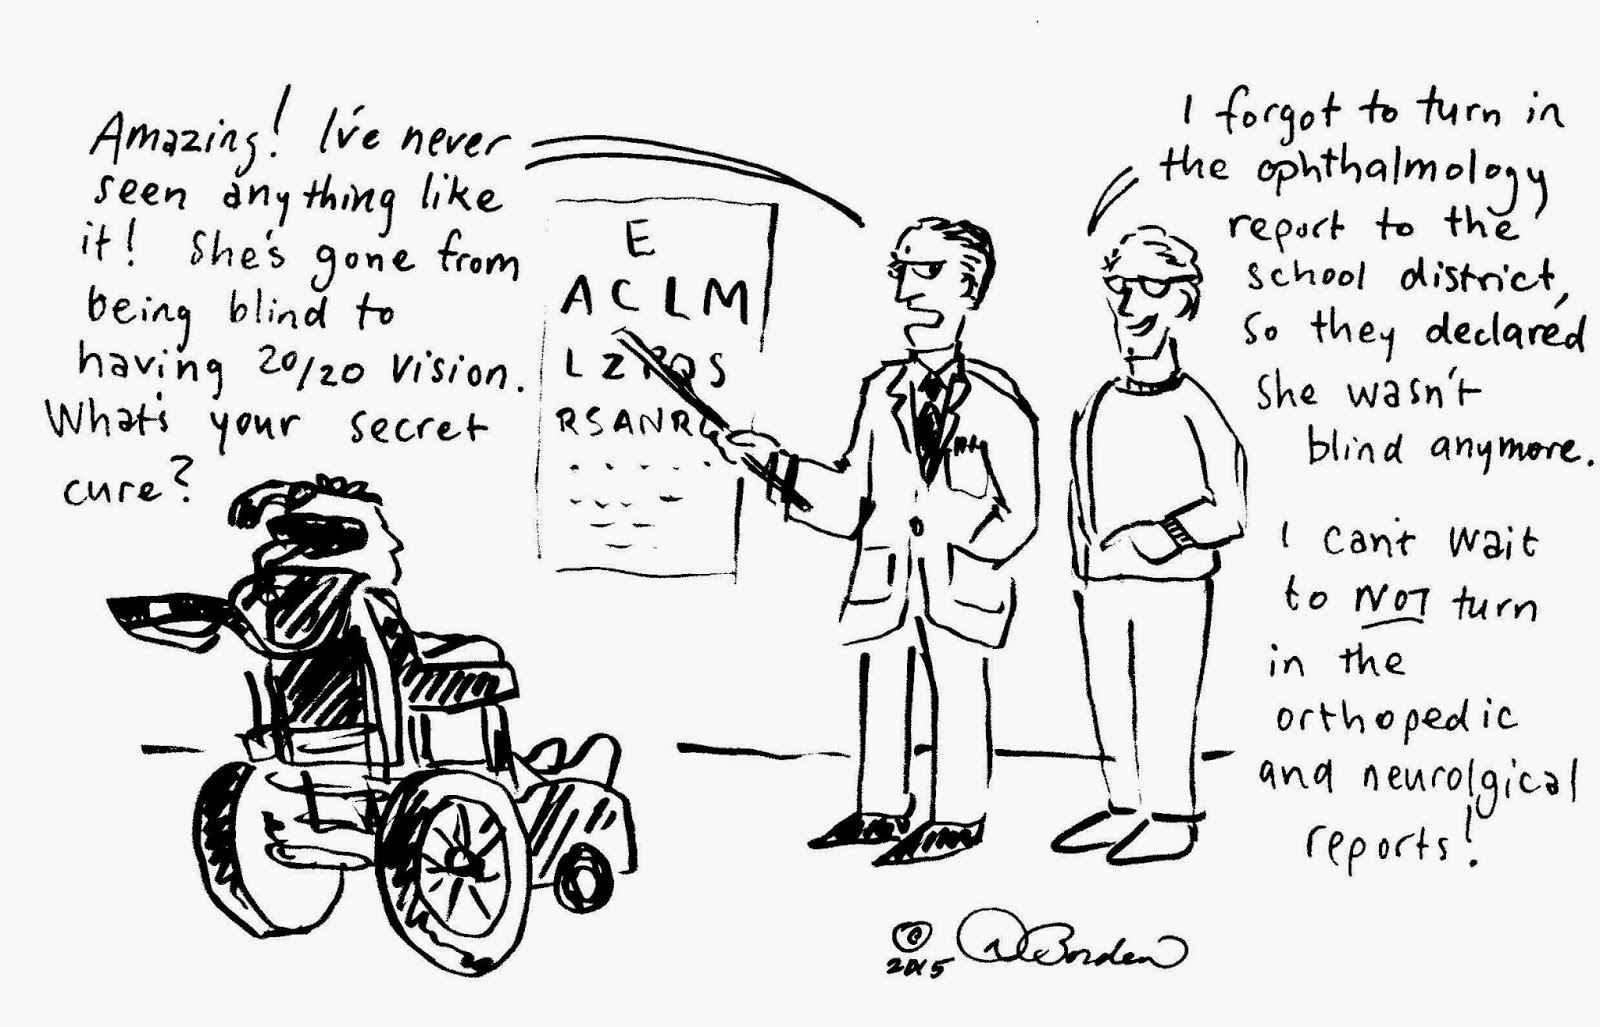 cartoon of a visit to the ophthalmologist, (c) 2015 by David Borden